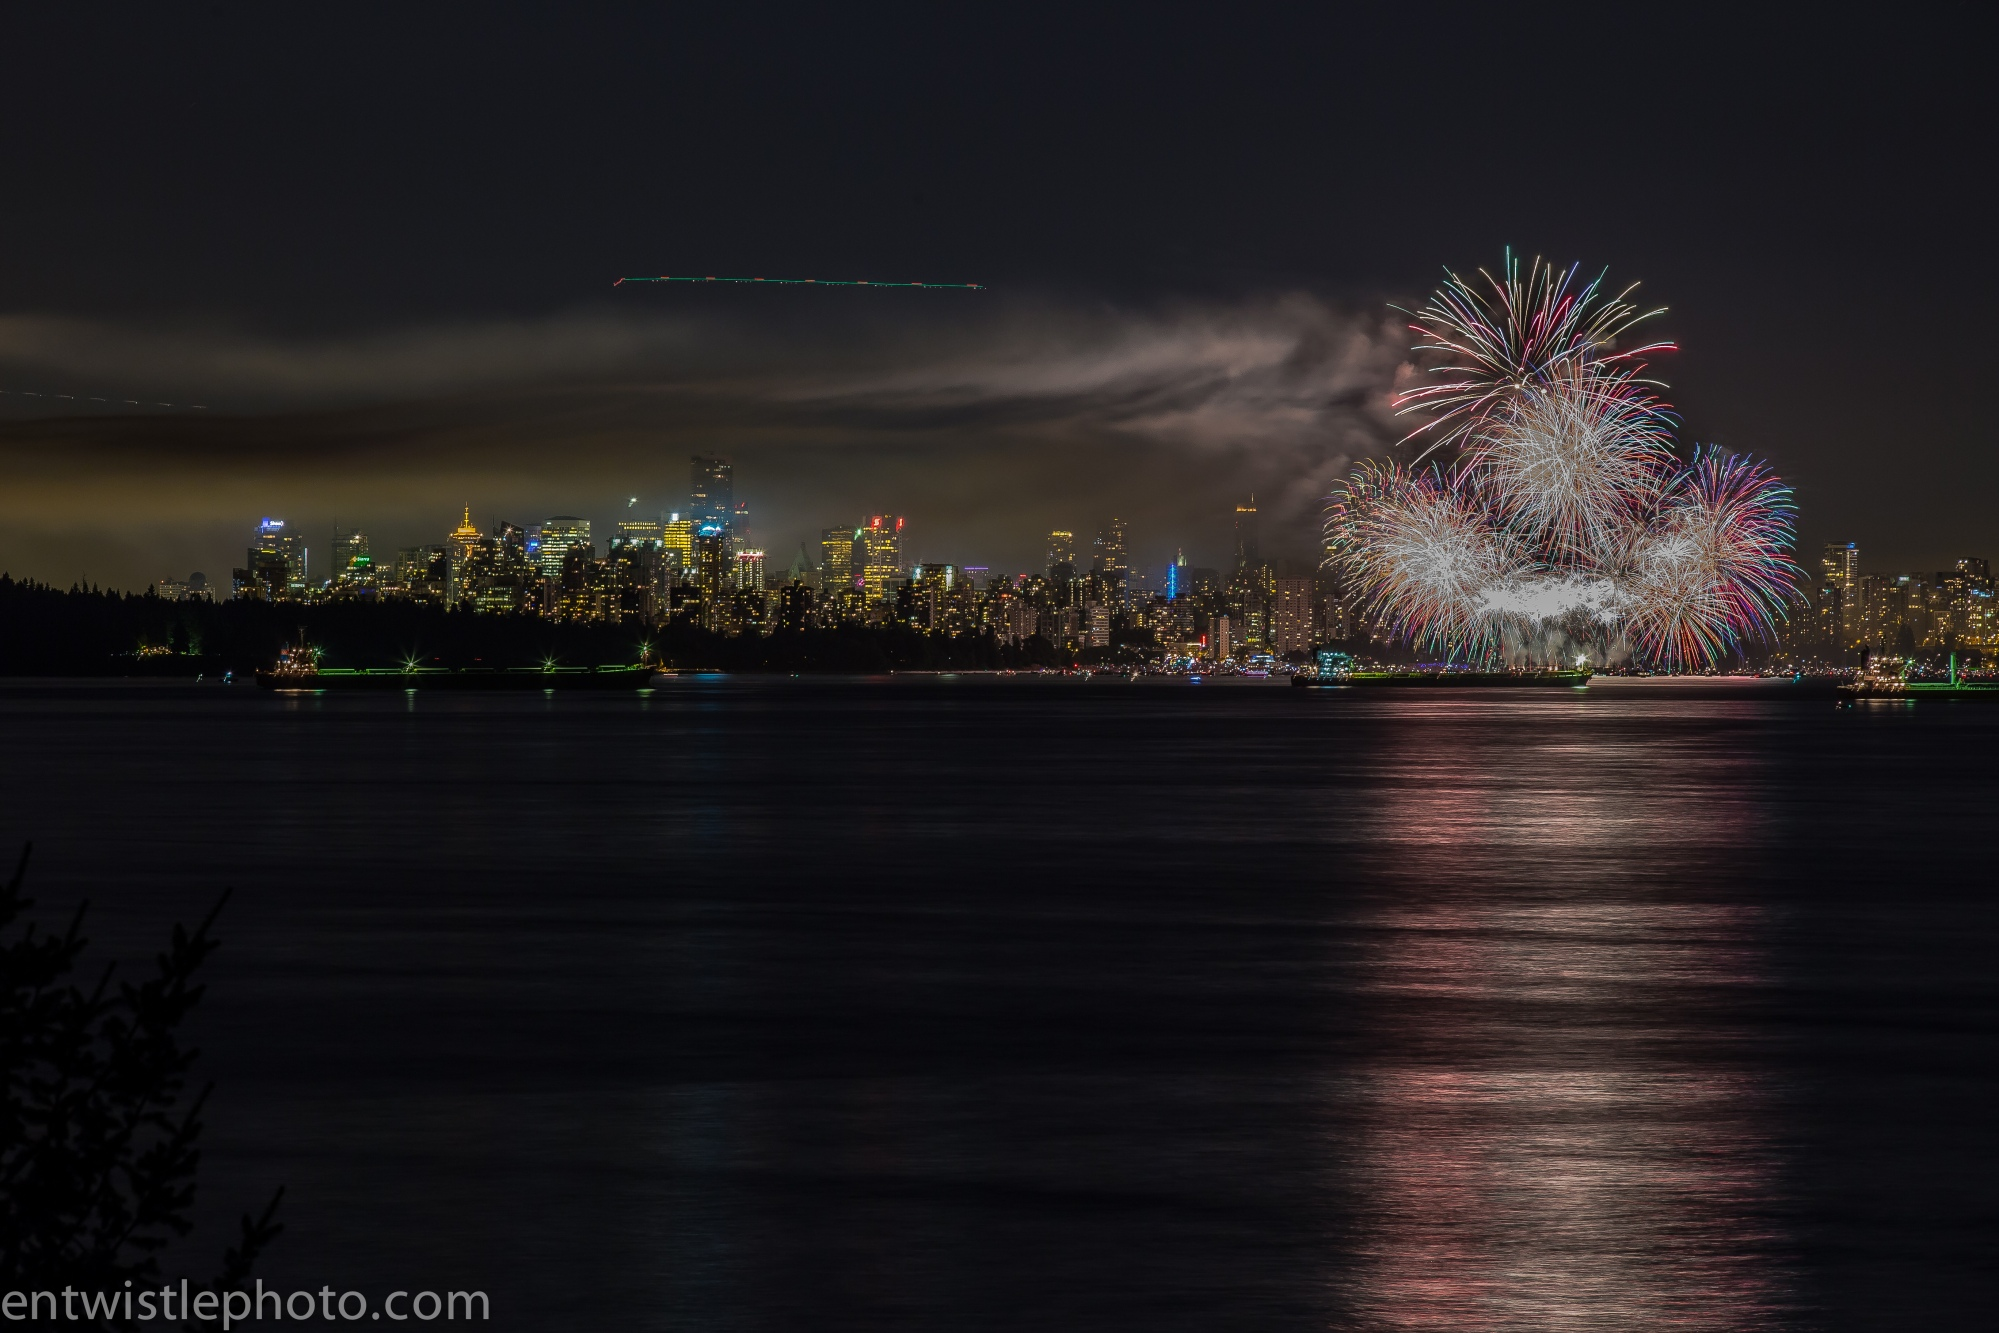 A much more Straight forward shot of fireworks in Vancouver